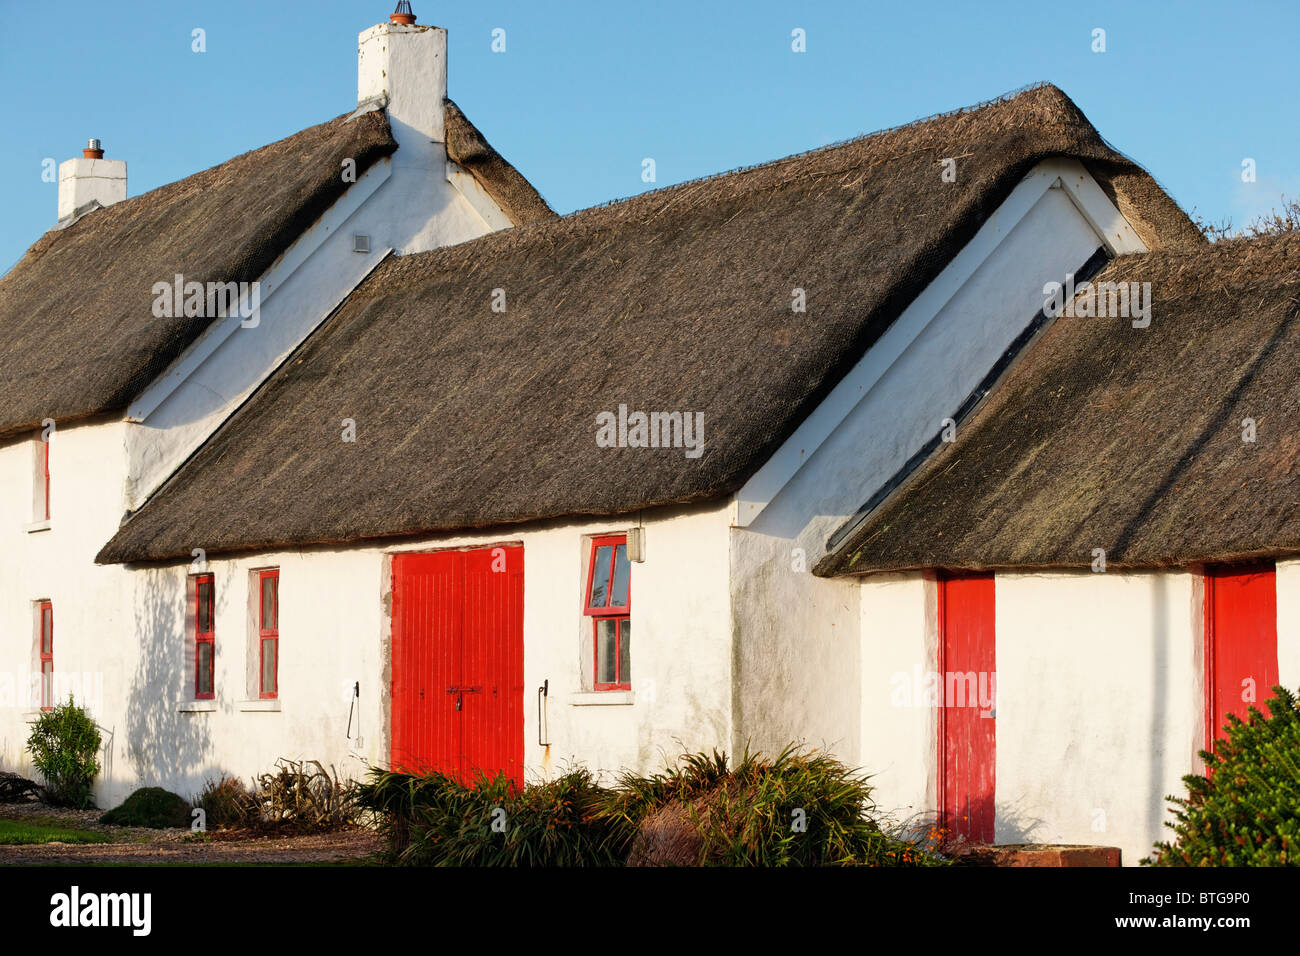 Thatched house at Earra Thire na Binne on the Fanad Peninsula, County Donegal, Ulster, Eire. - Stock Image